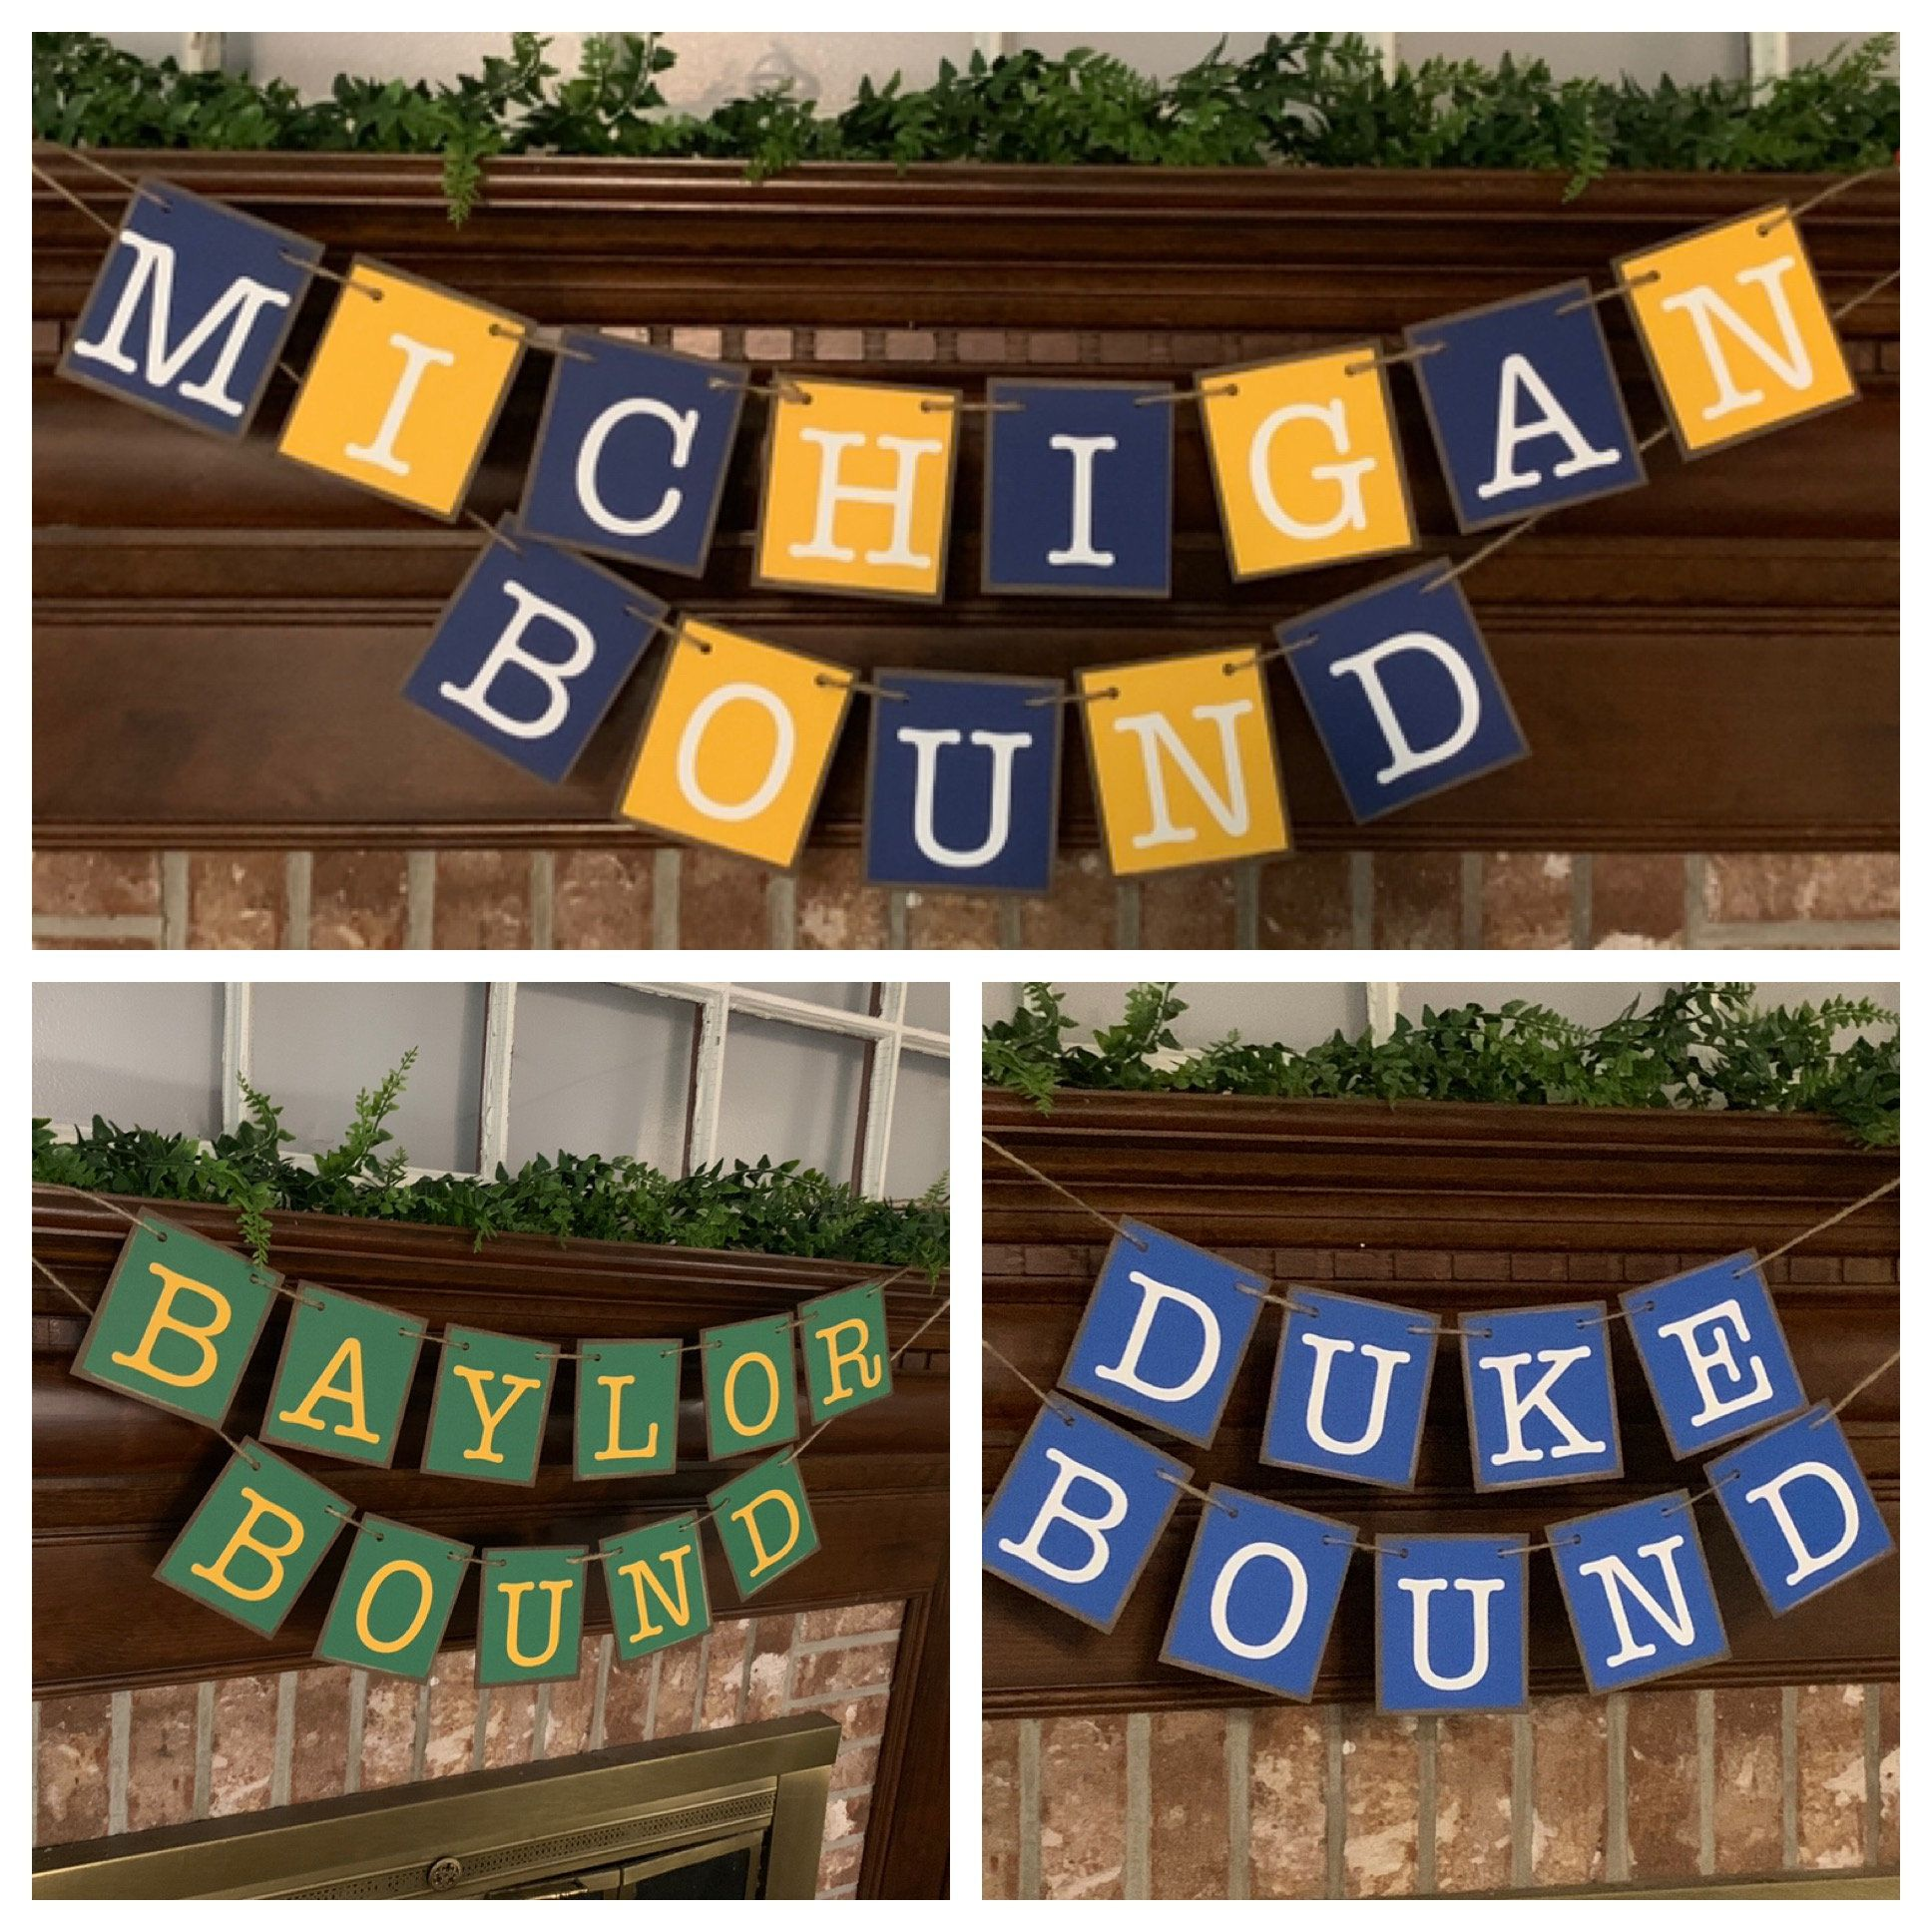 Graduation Custom College Bound Banners Signs Garlands Grad Party Decor Michigan Ohio State Baylor Duke Pick Your College and Colors